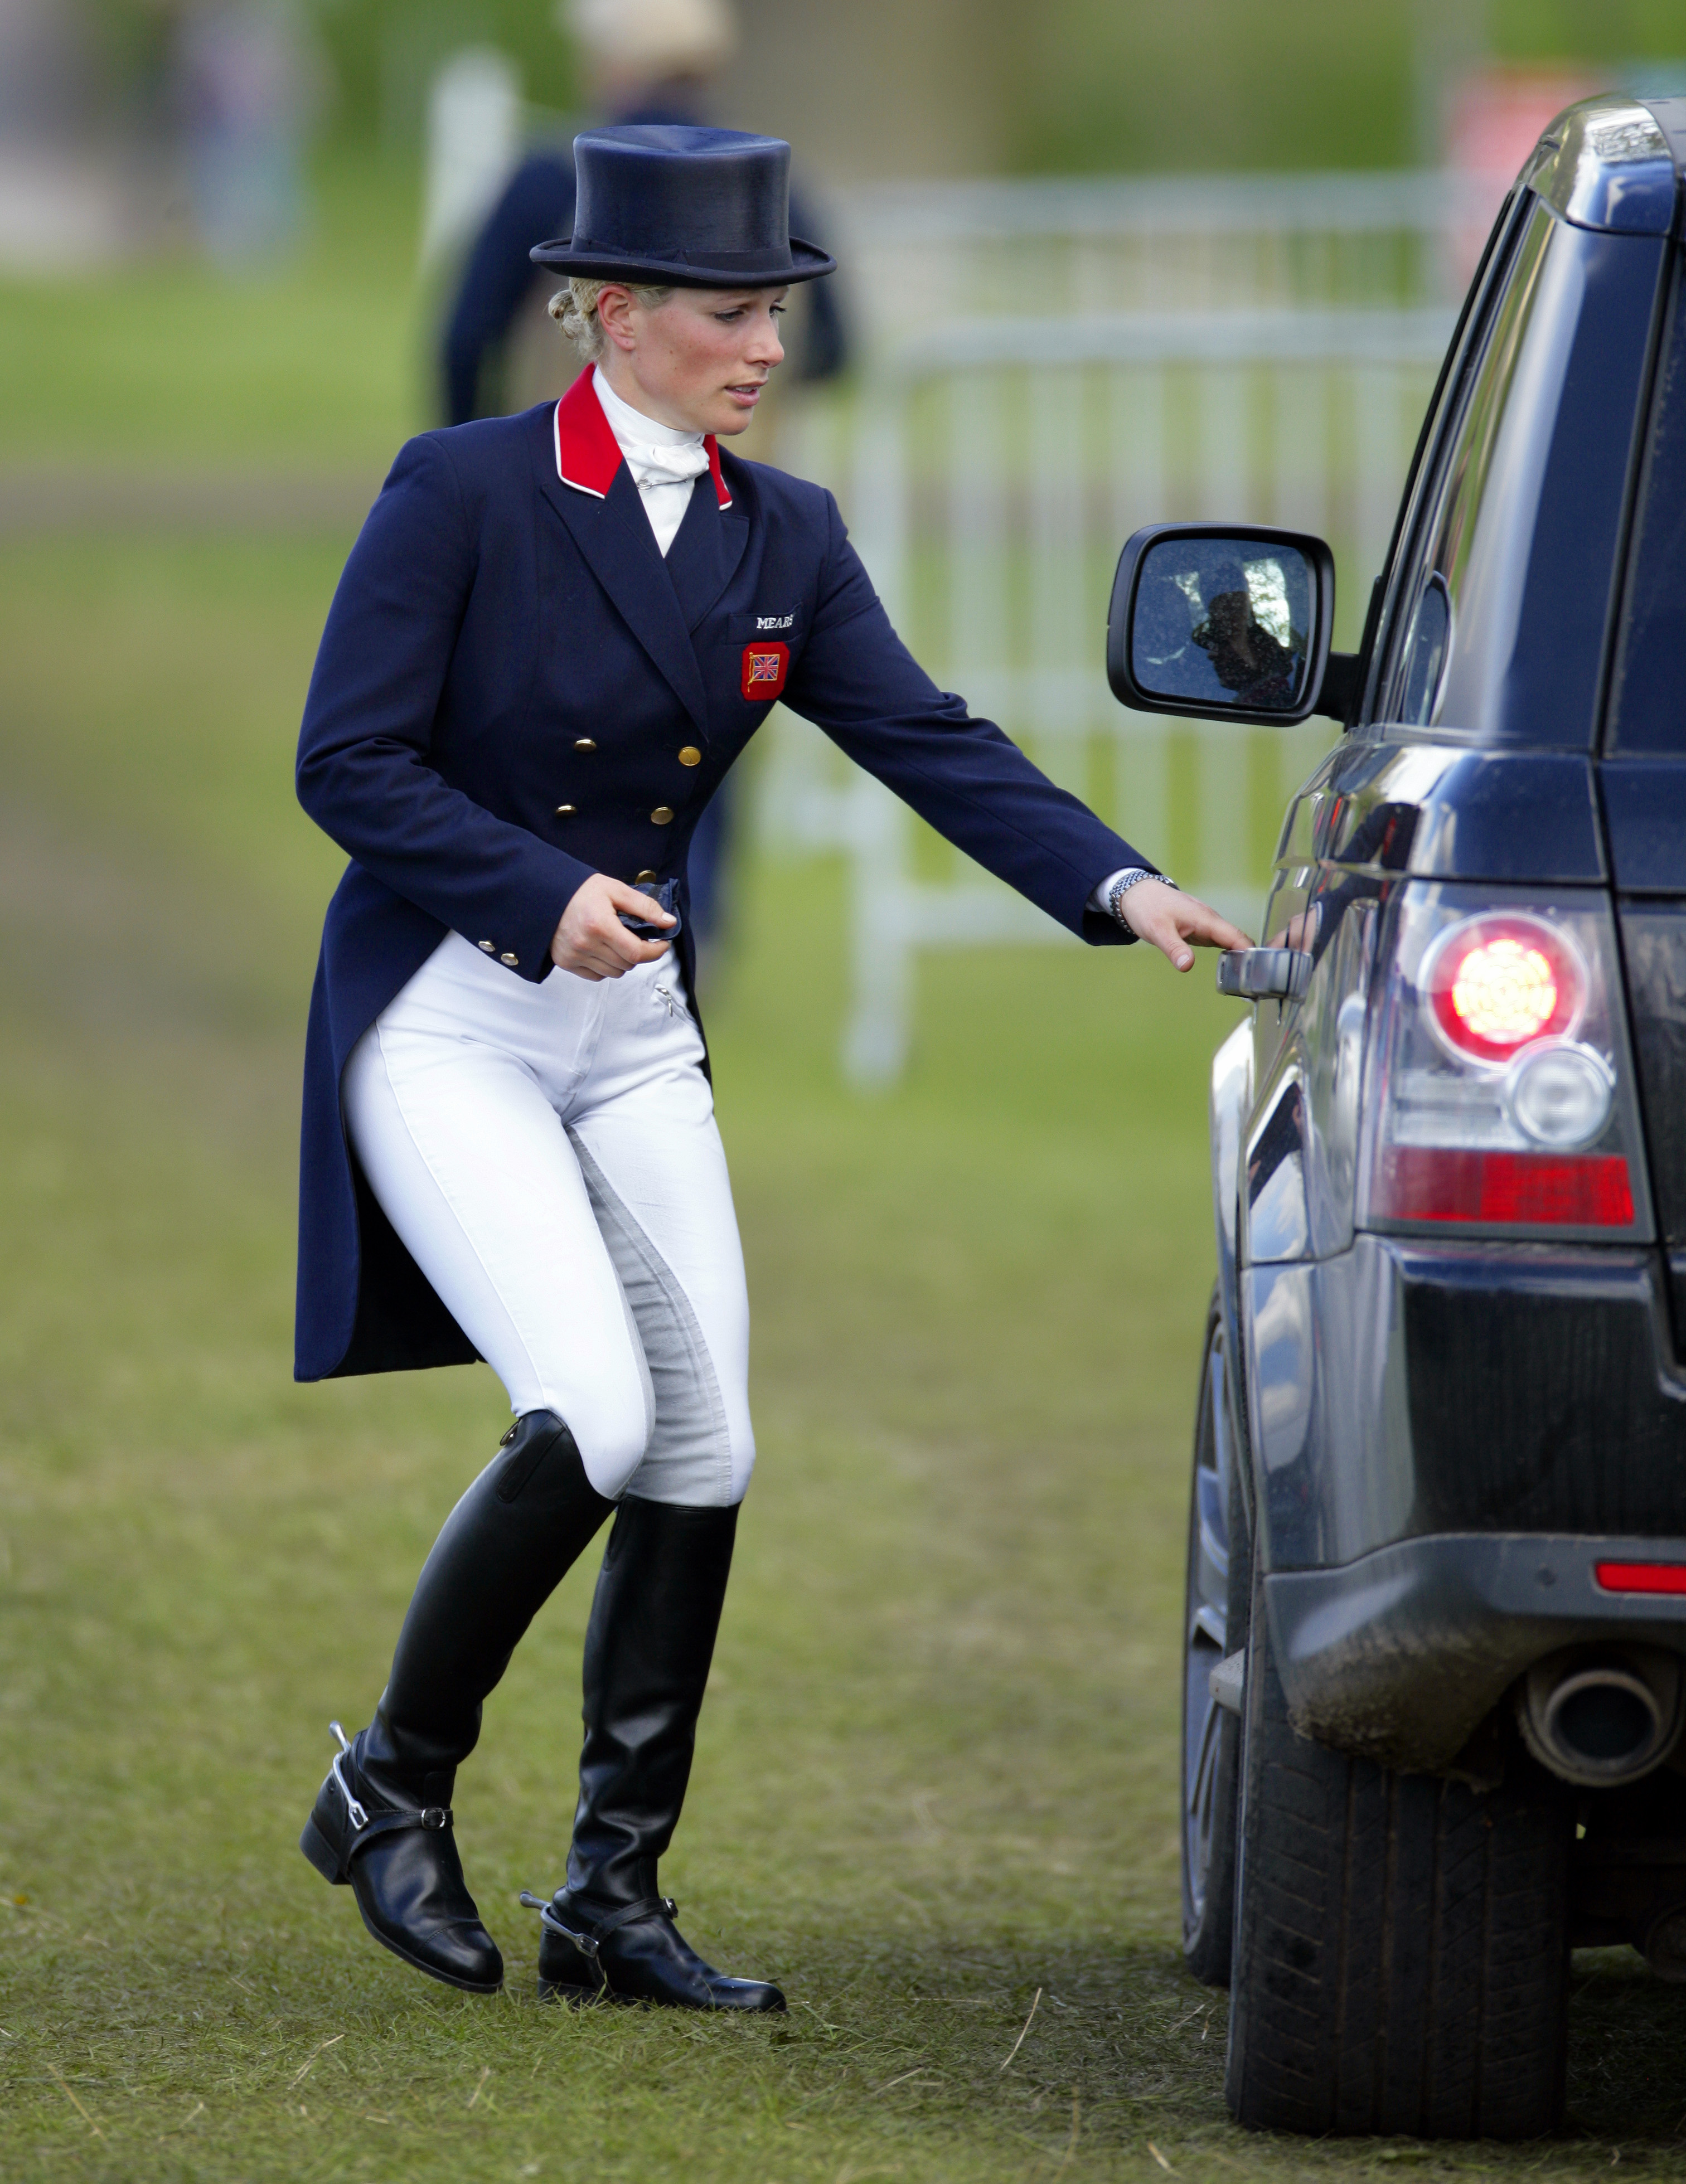 Equestrian clothing has inspired countless designers Replica designer clothes uk